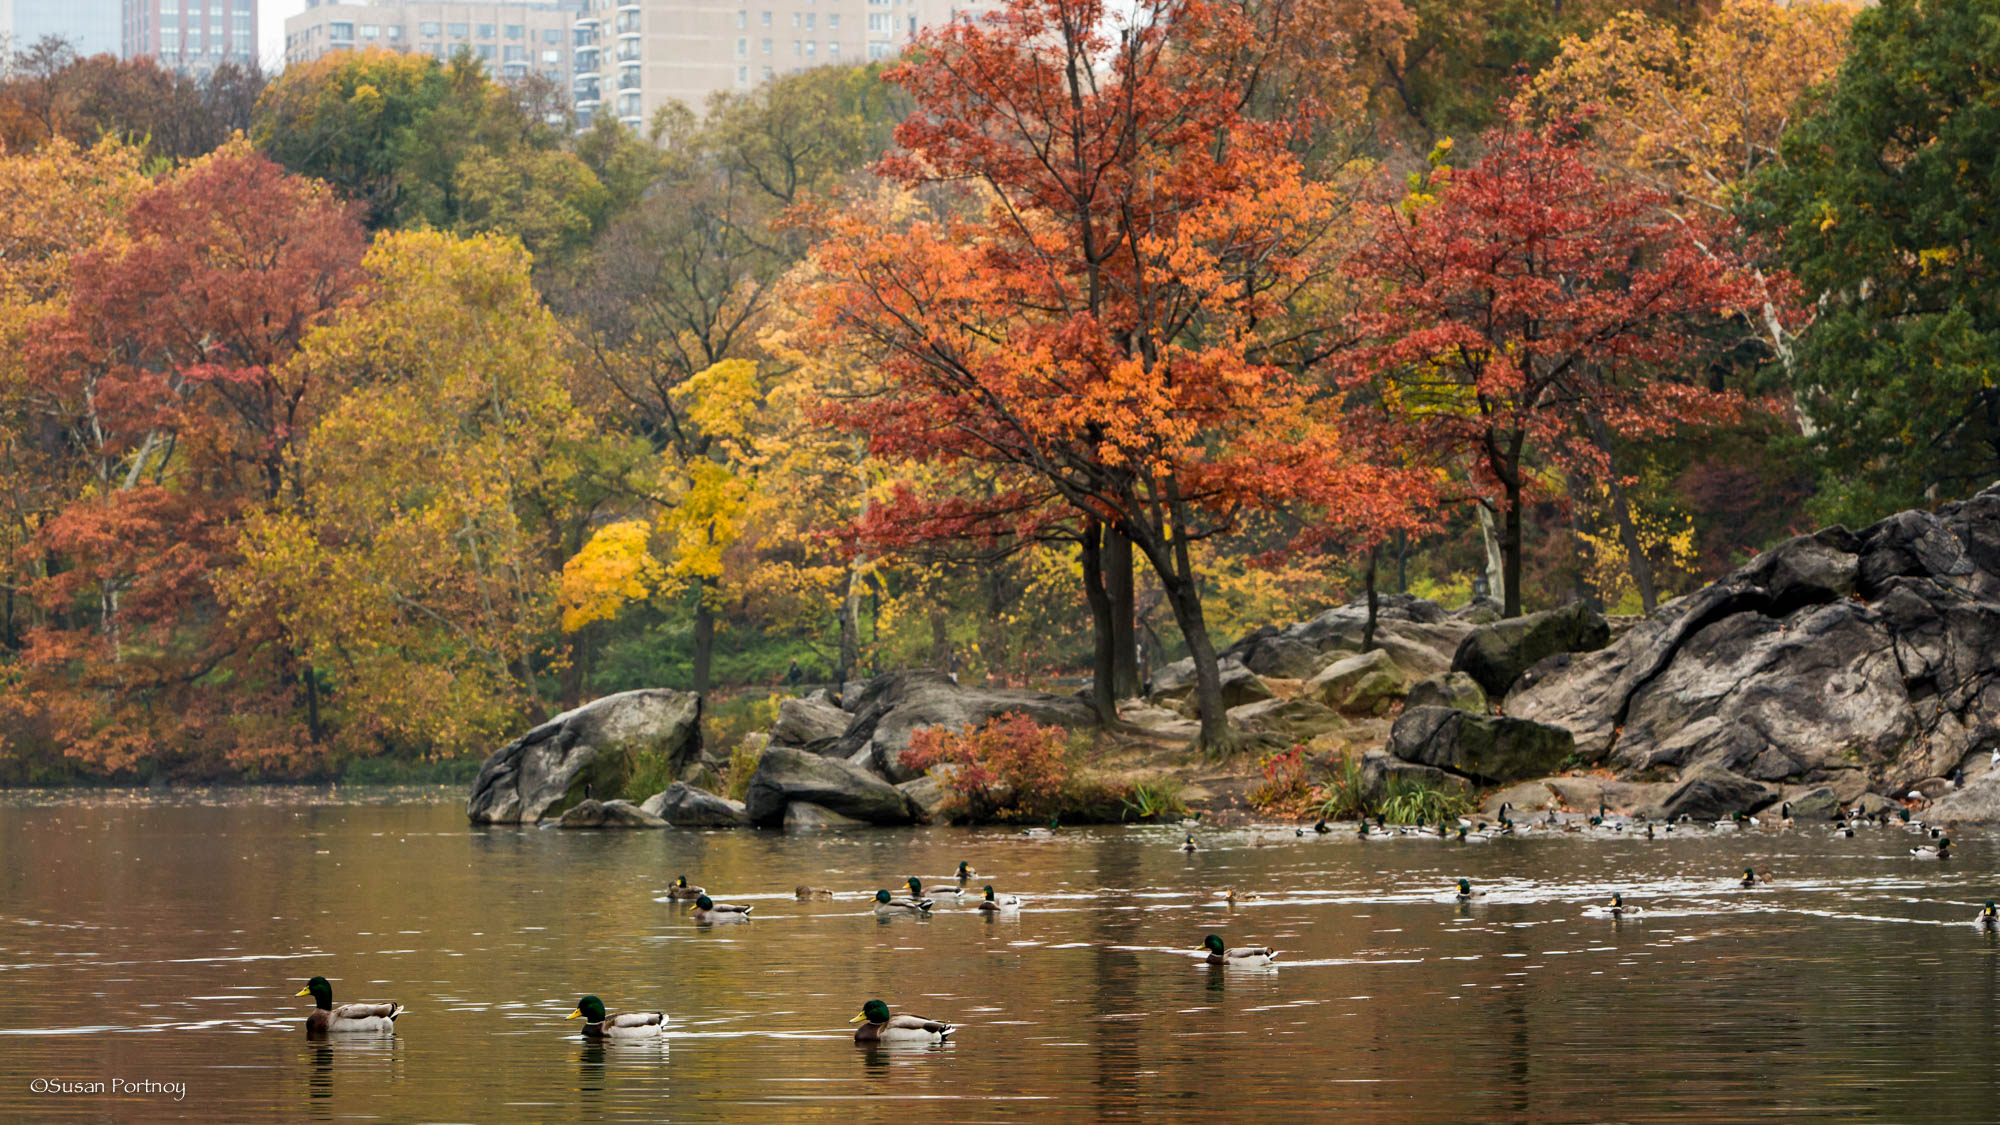 The Hernshead in Central Park, NYC